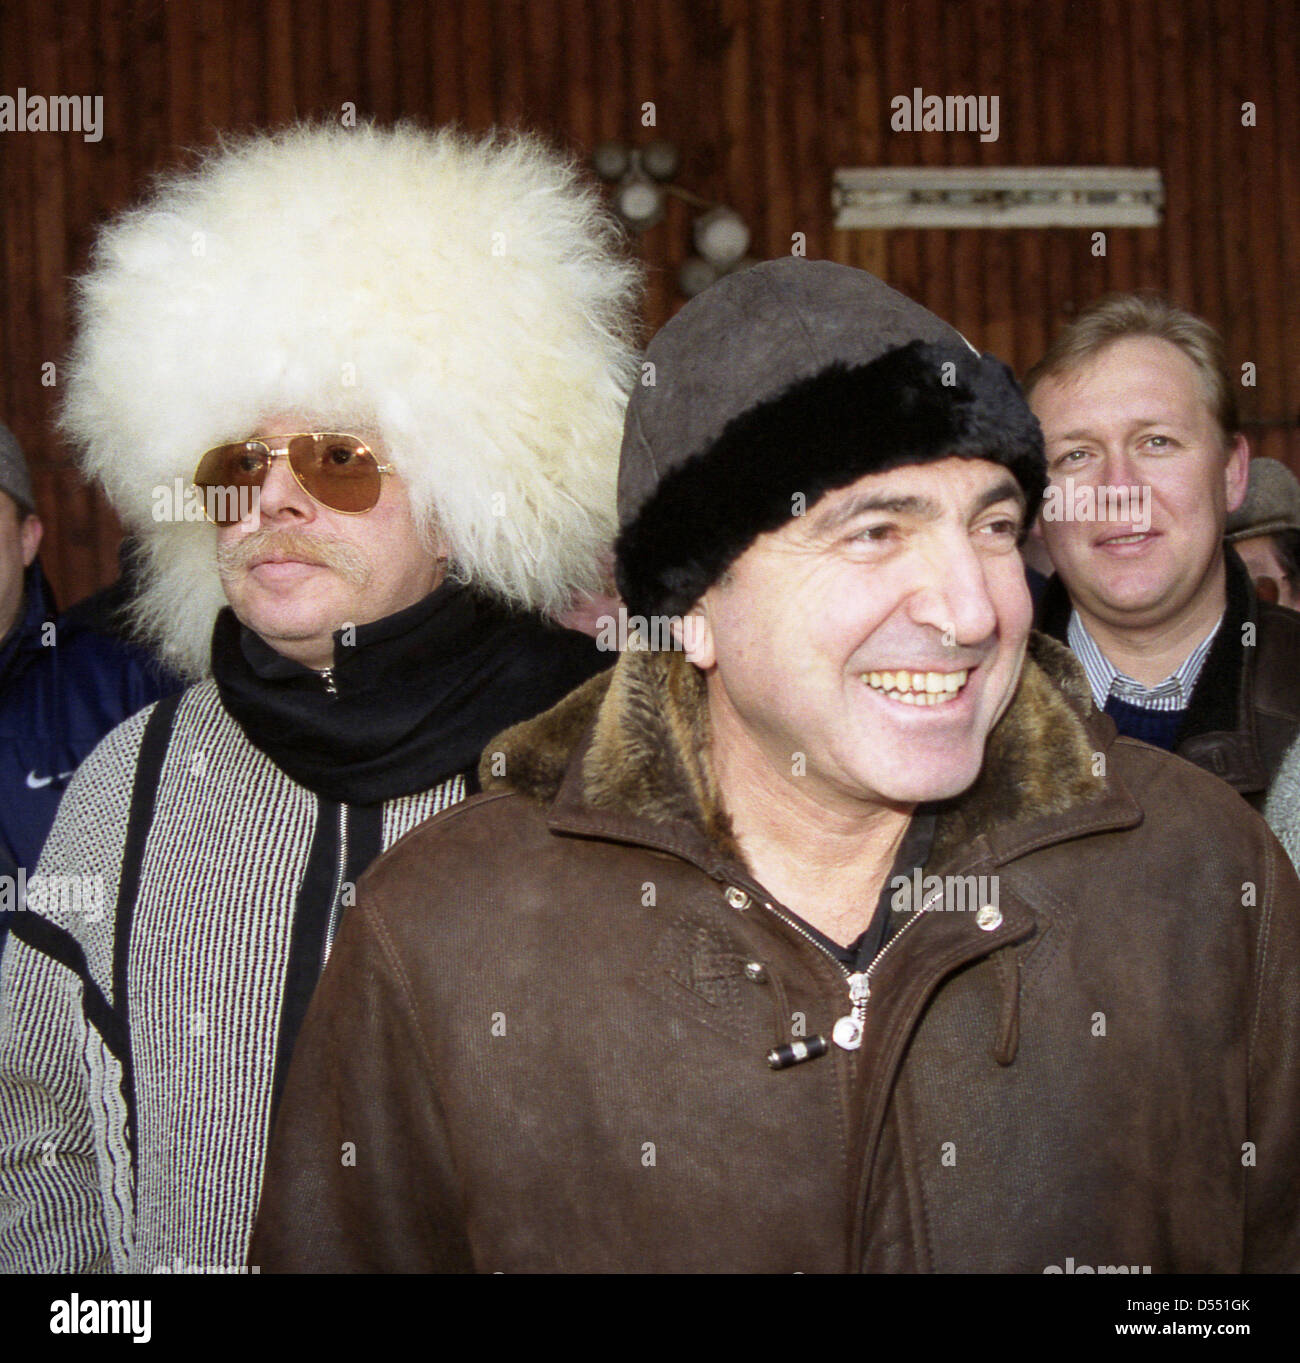 File pics: 23rd March 2013. Russian tycoon Boris Berezovsky dies in London Dec. 1, 1999 - Russia - December 1999. - Stock Image